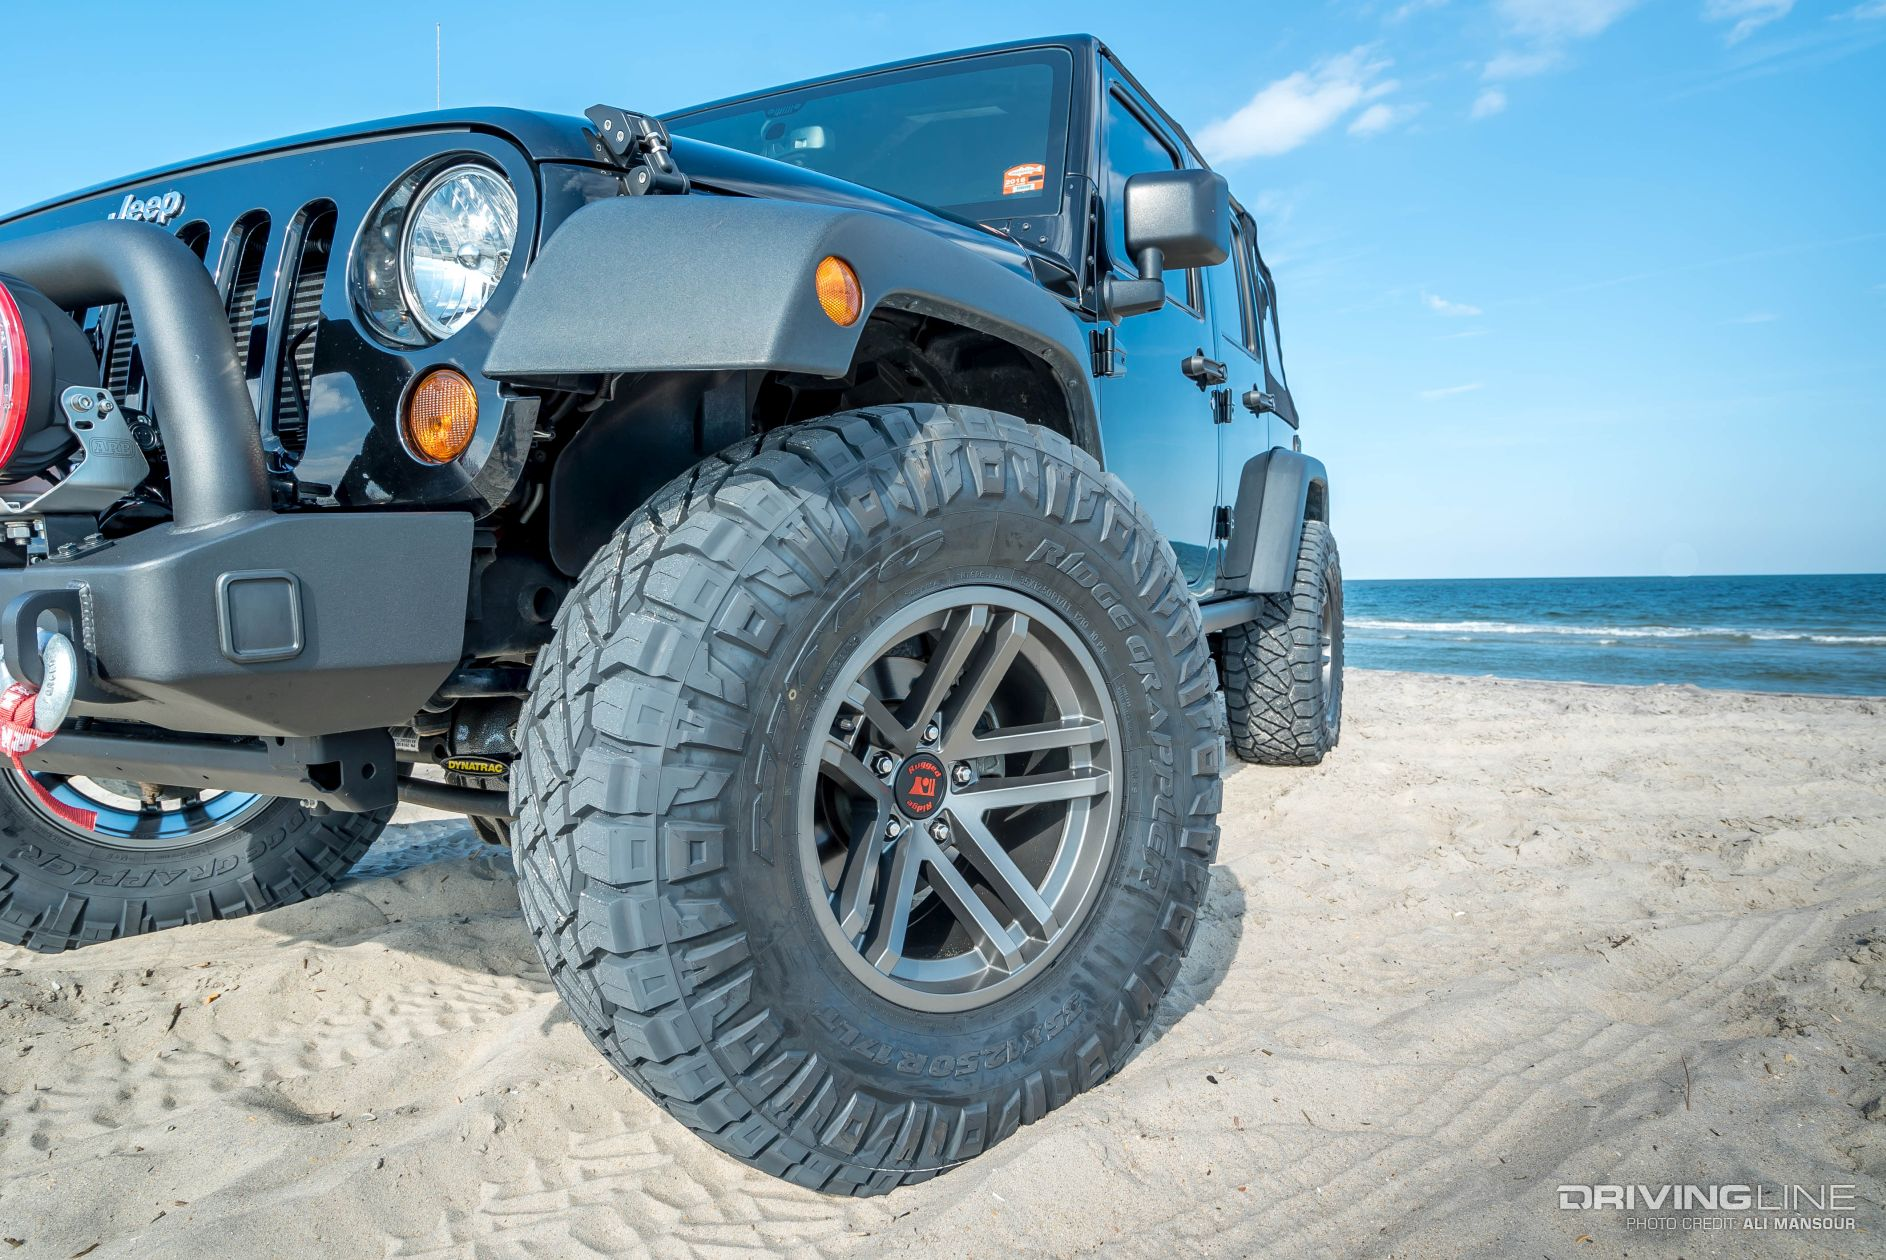 Jeep Jk Lift Kit Reviewswhat Should I Use For 37 Inch Tires With Nitto Ridge Grappler Tire Review Drivingline